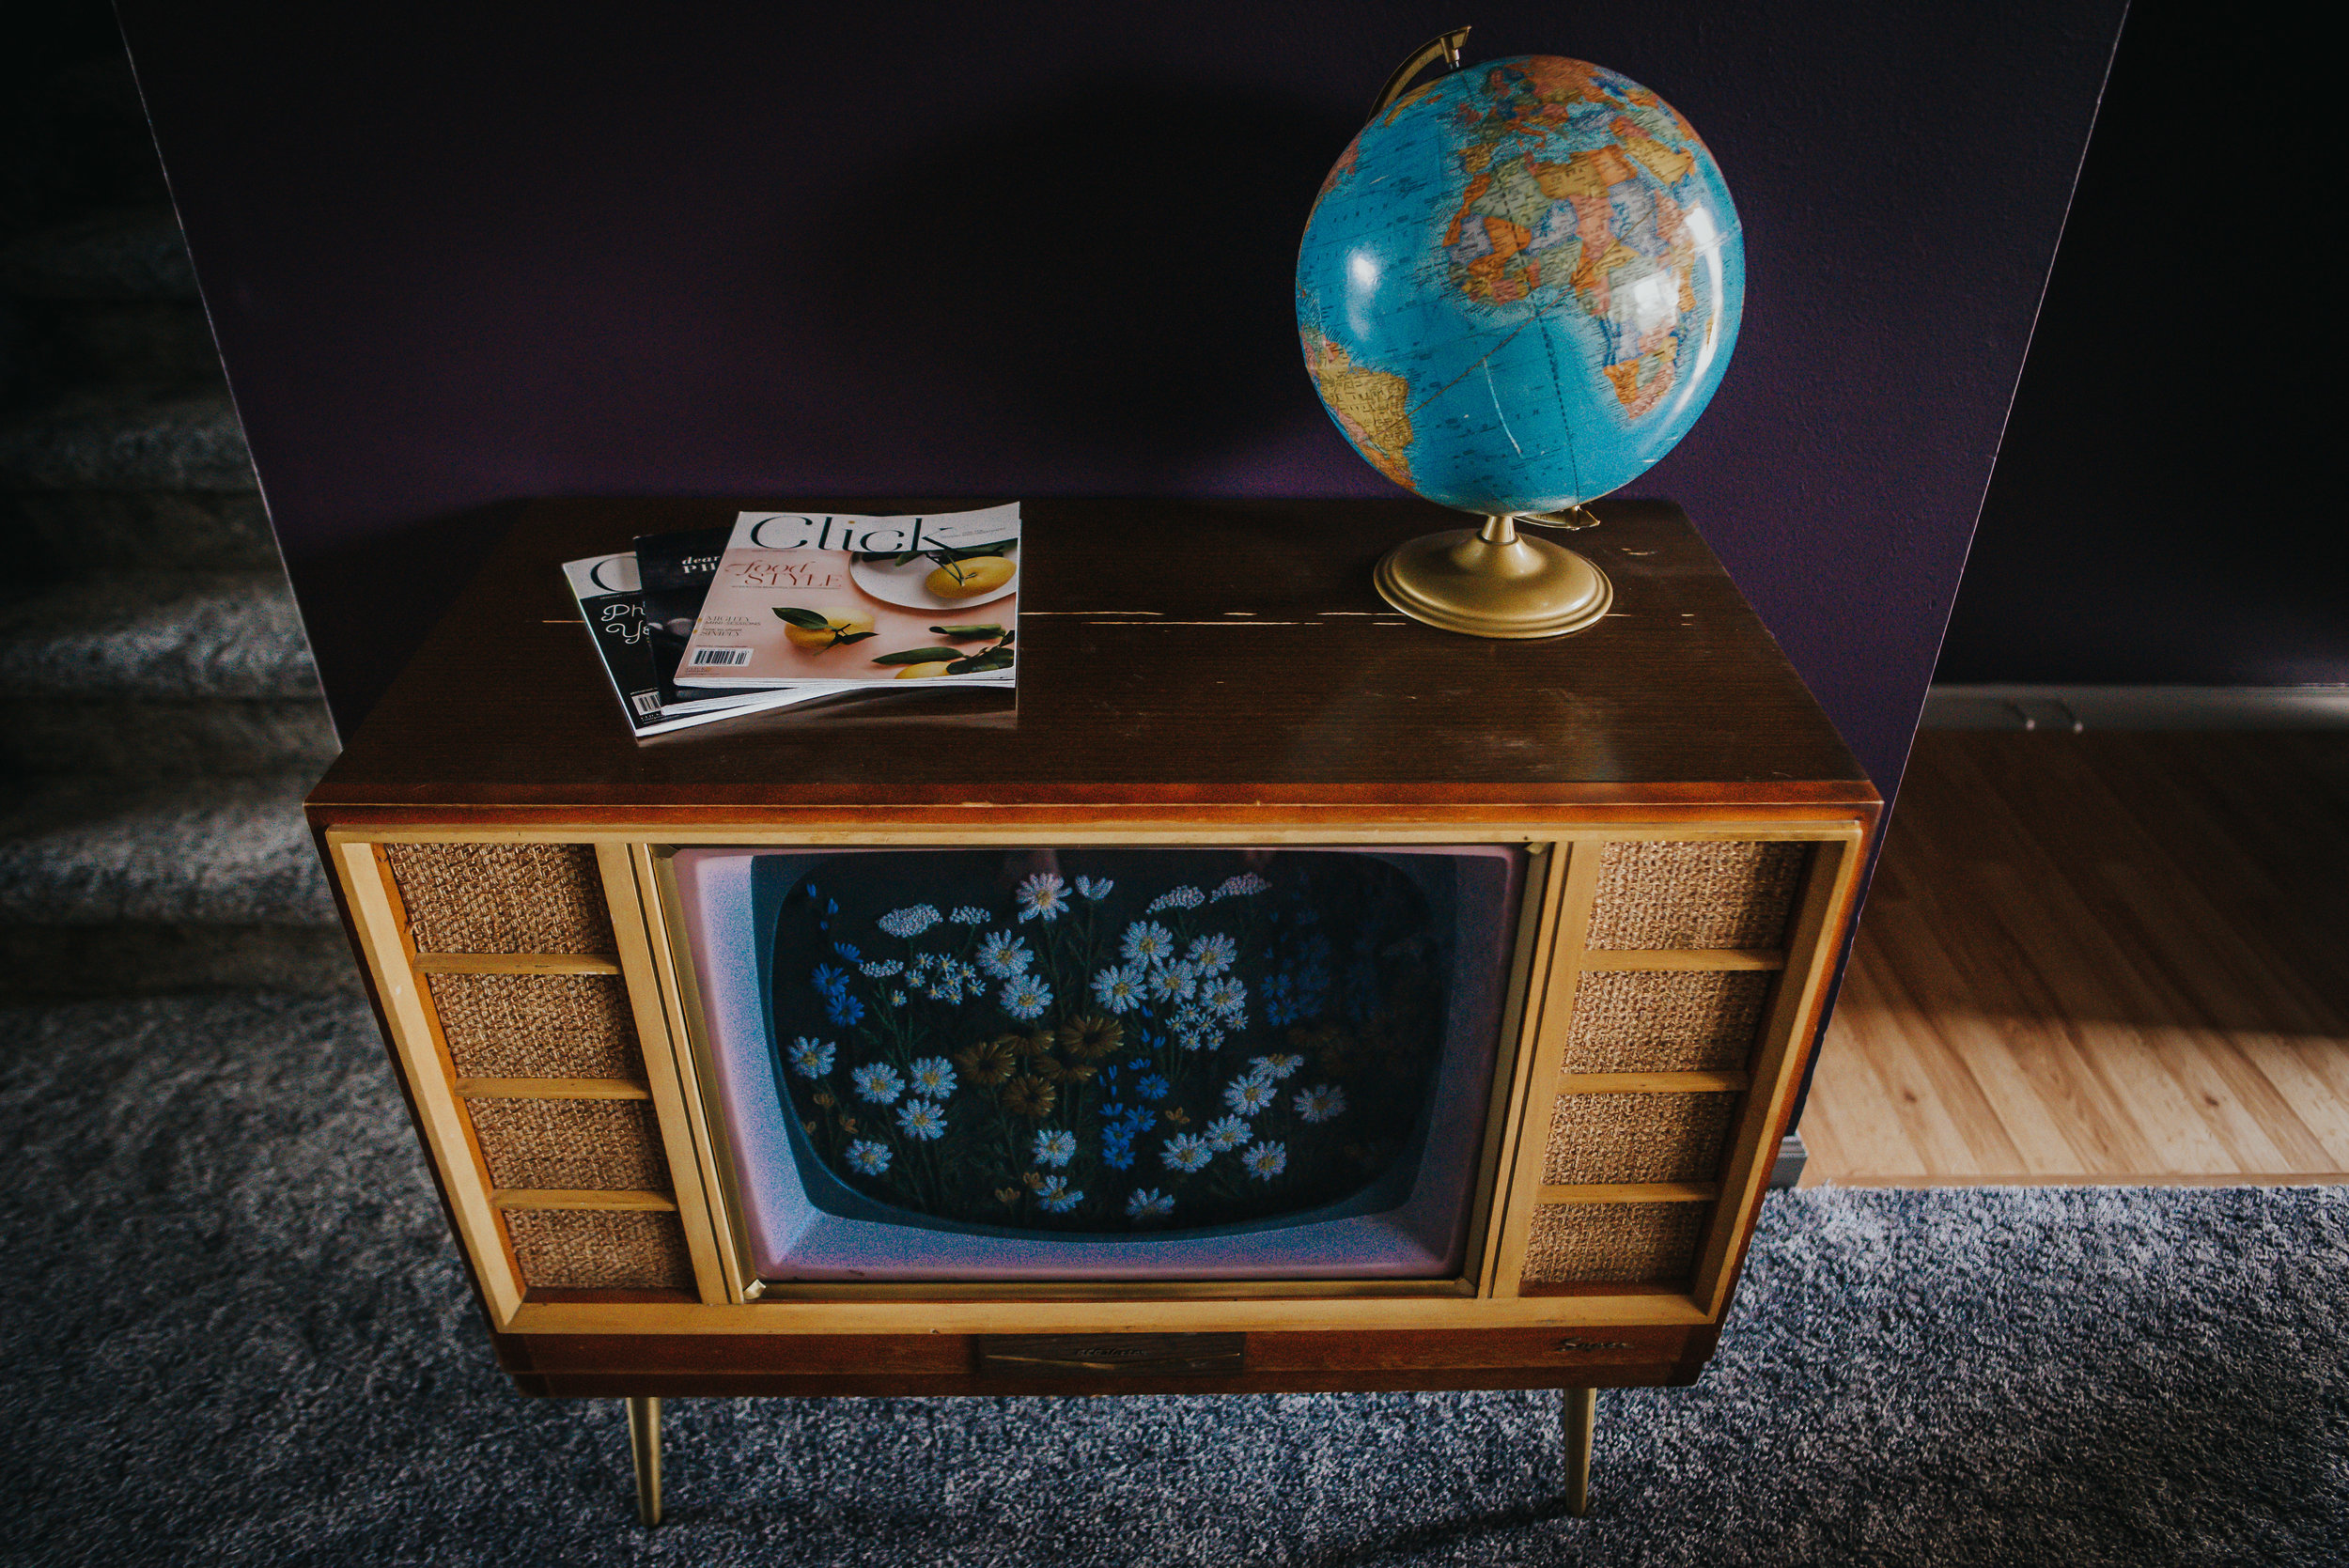 Vintage television set with flowers and magazines.